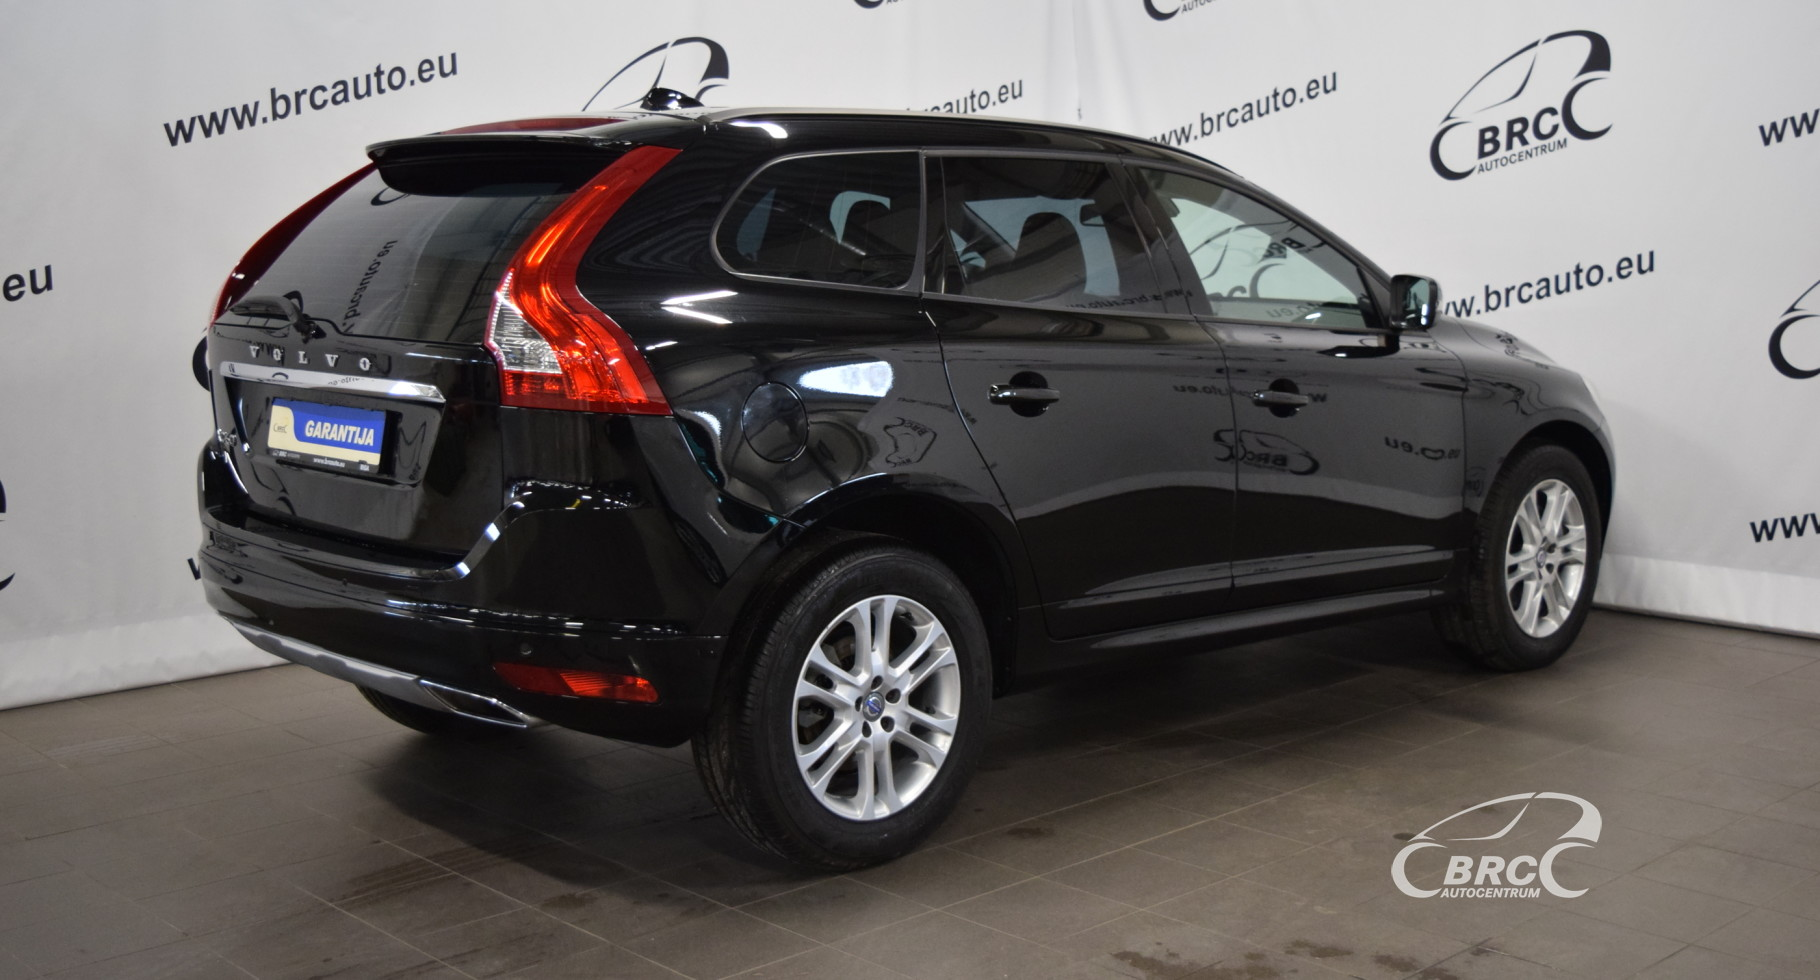 Volvo XC 60 D4 Kinetic FWD